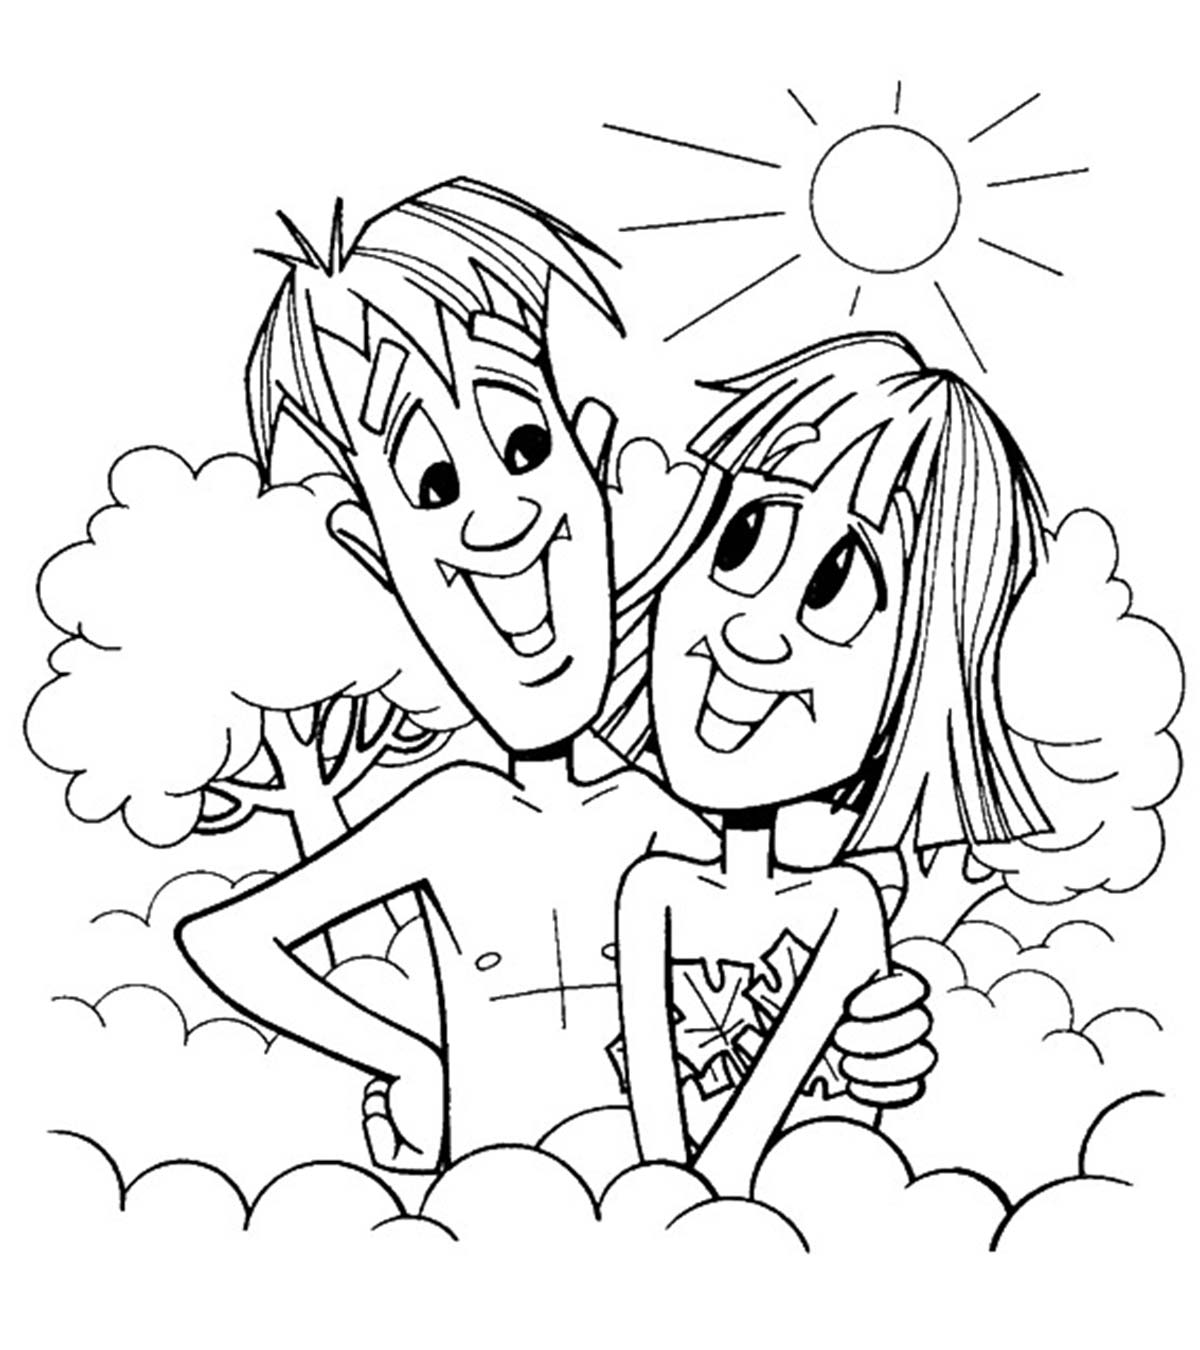 adam and eve coloring sheet bible key point coloring page adam and eve free coloring adam sheet and eve